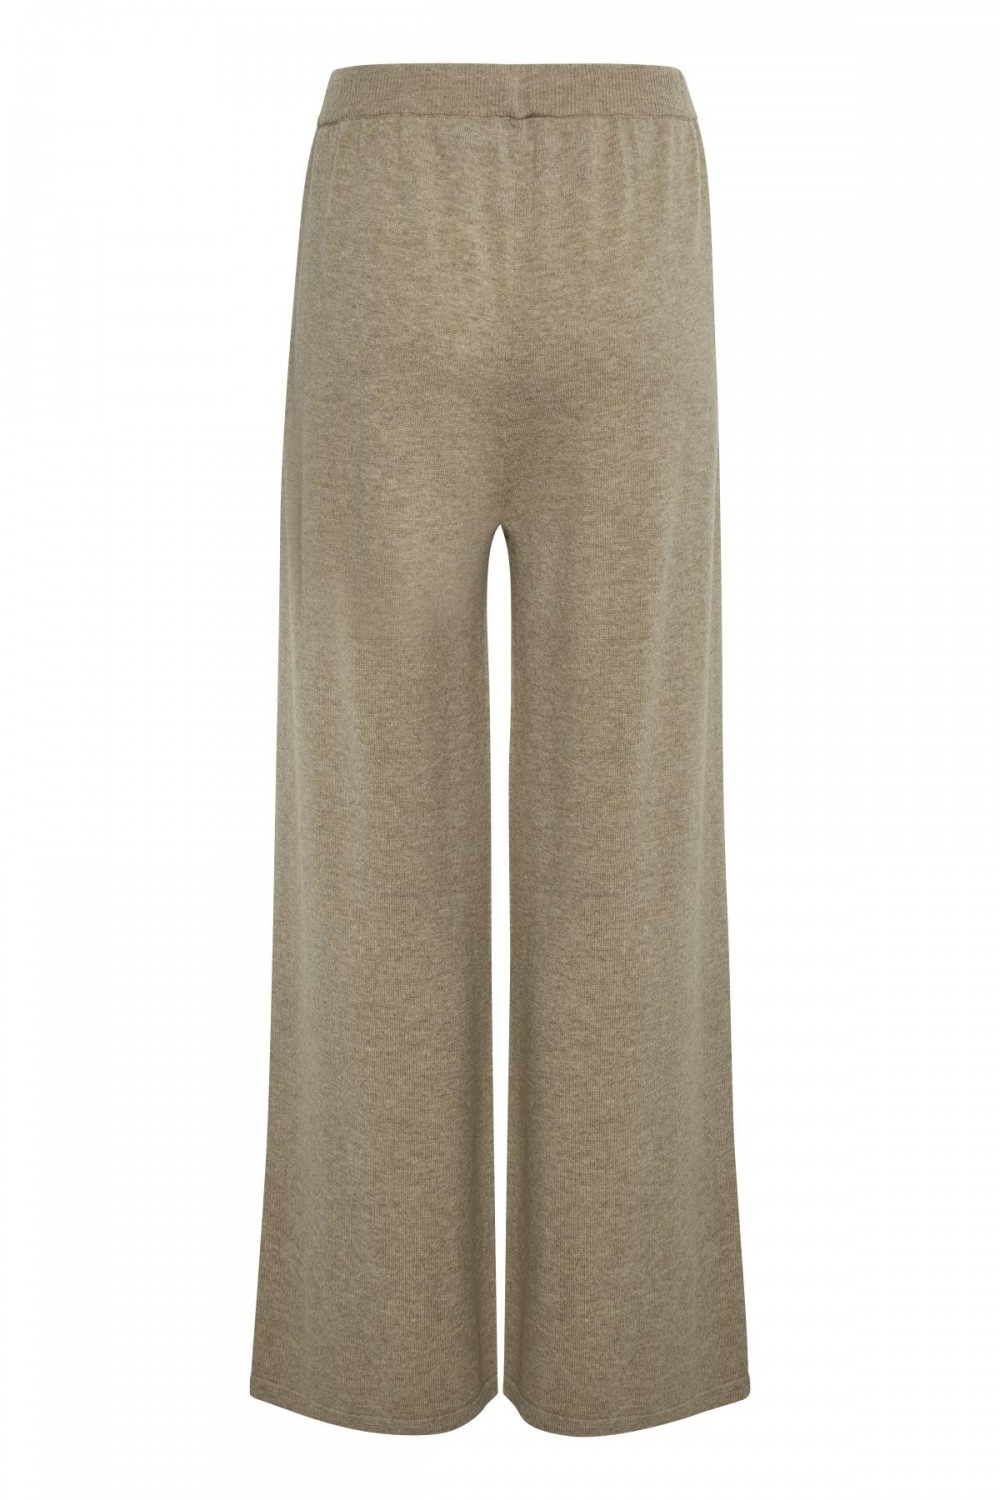 Lounge Nine Emy LN Knit Pants Portabella